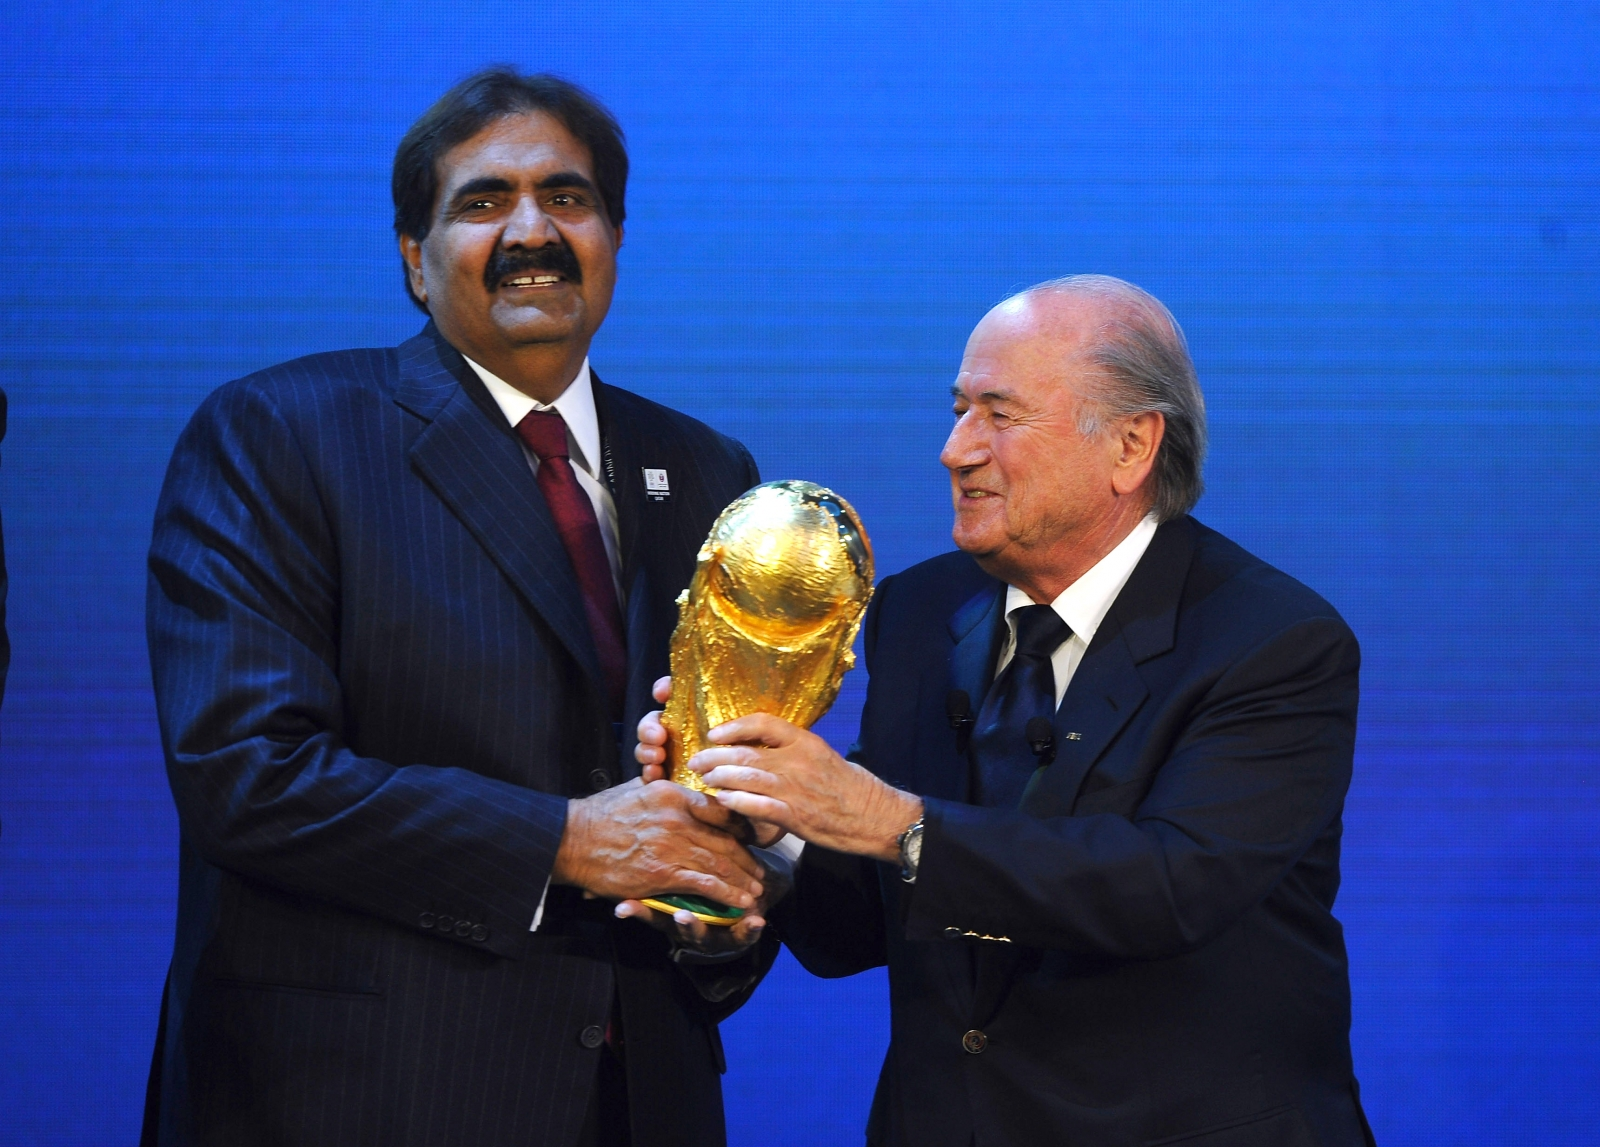 Report on alleged corruption in Qatar 2022 World Cup bid published